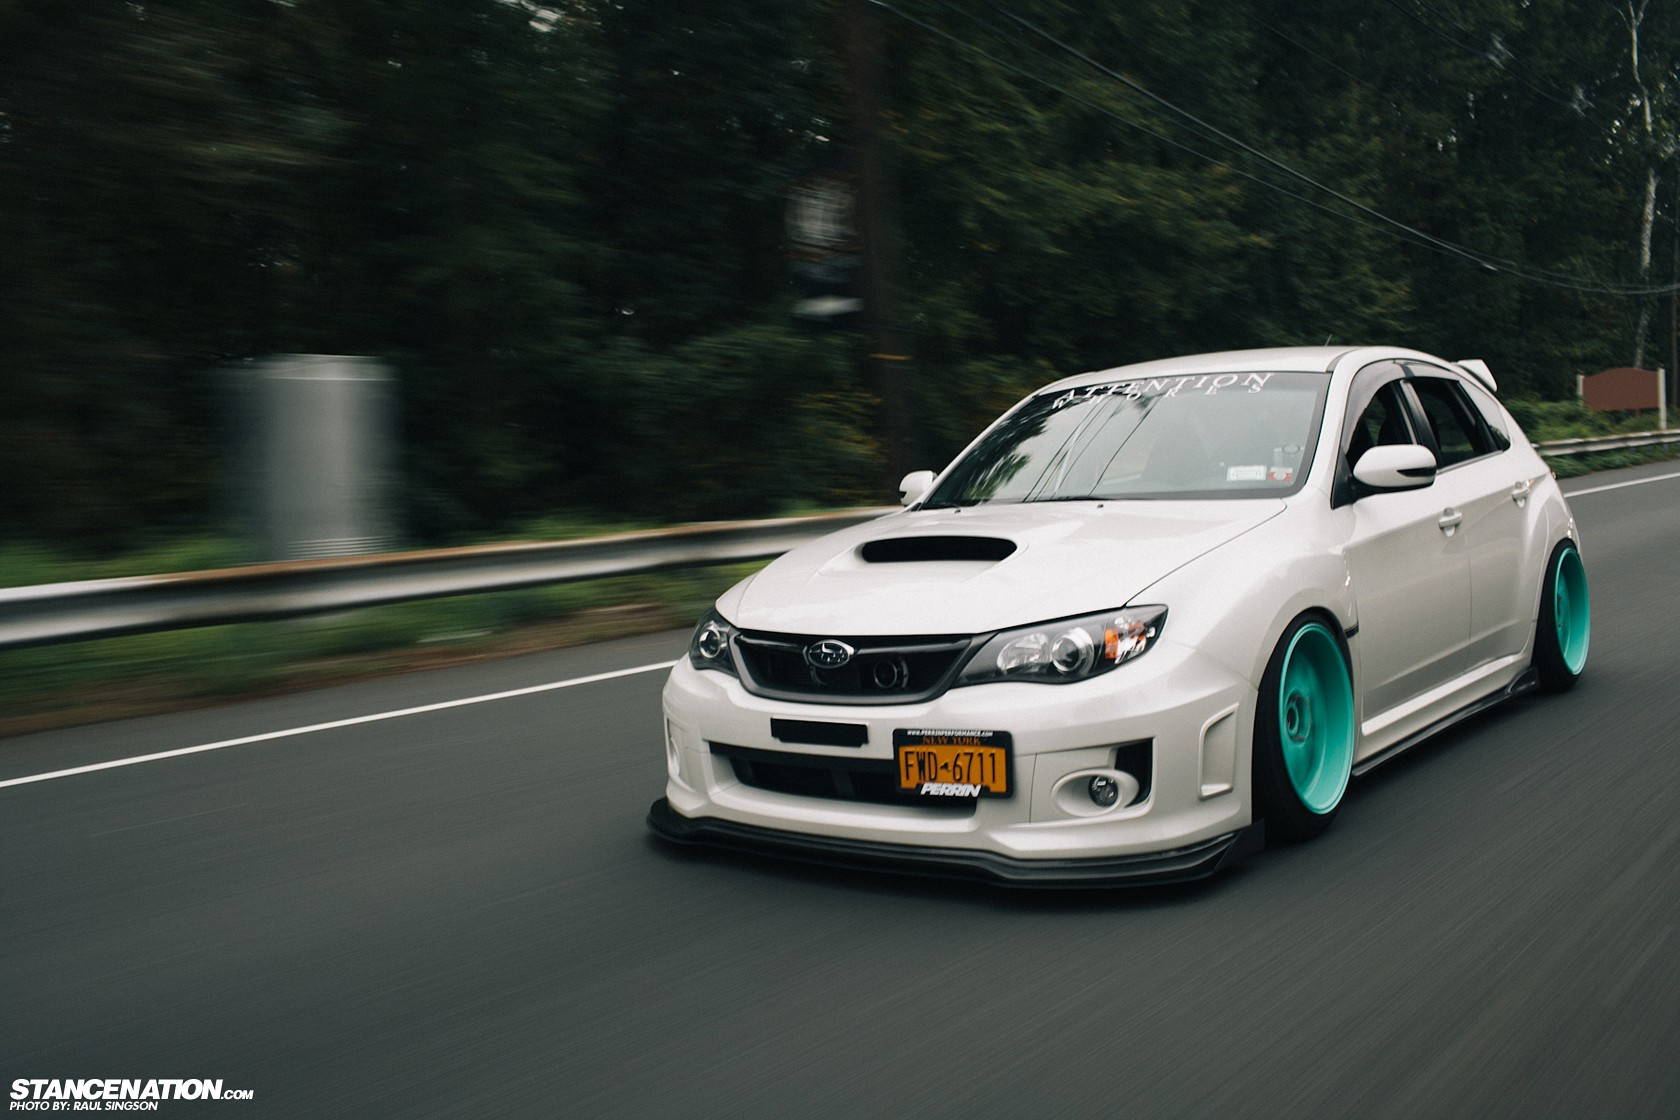 Stanced Car Iphone Wallpaper Subaru Subaru Impreza Stancenation Stance Wallpapers Hd